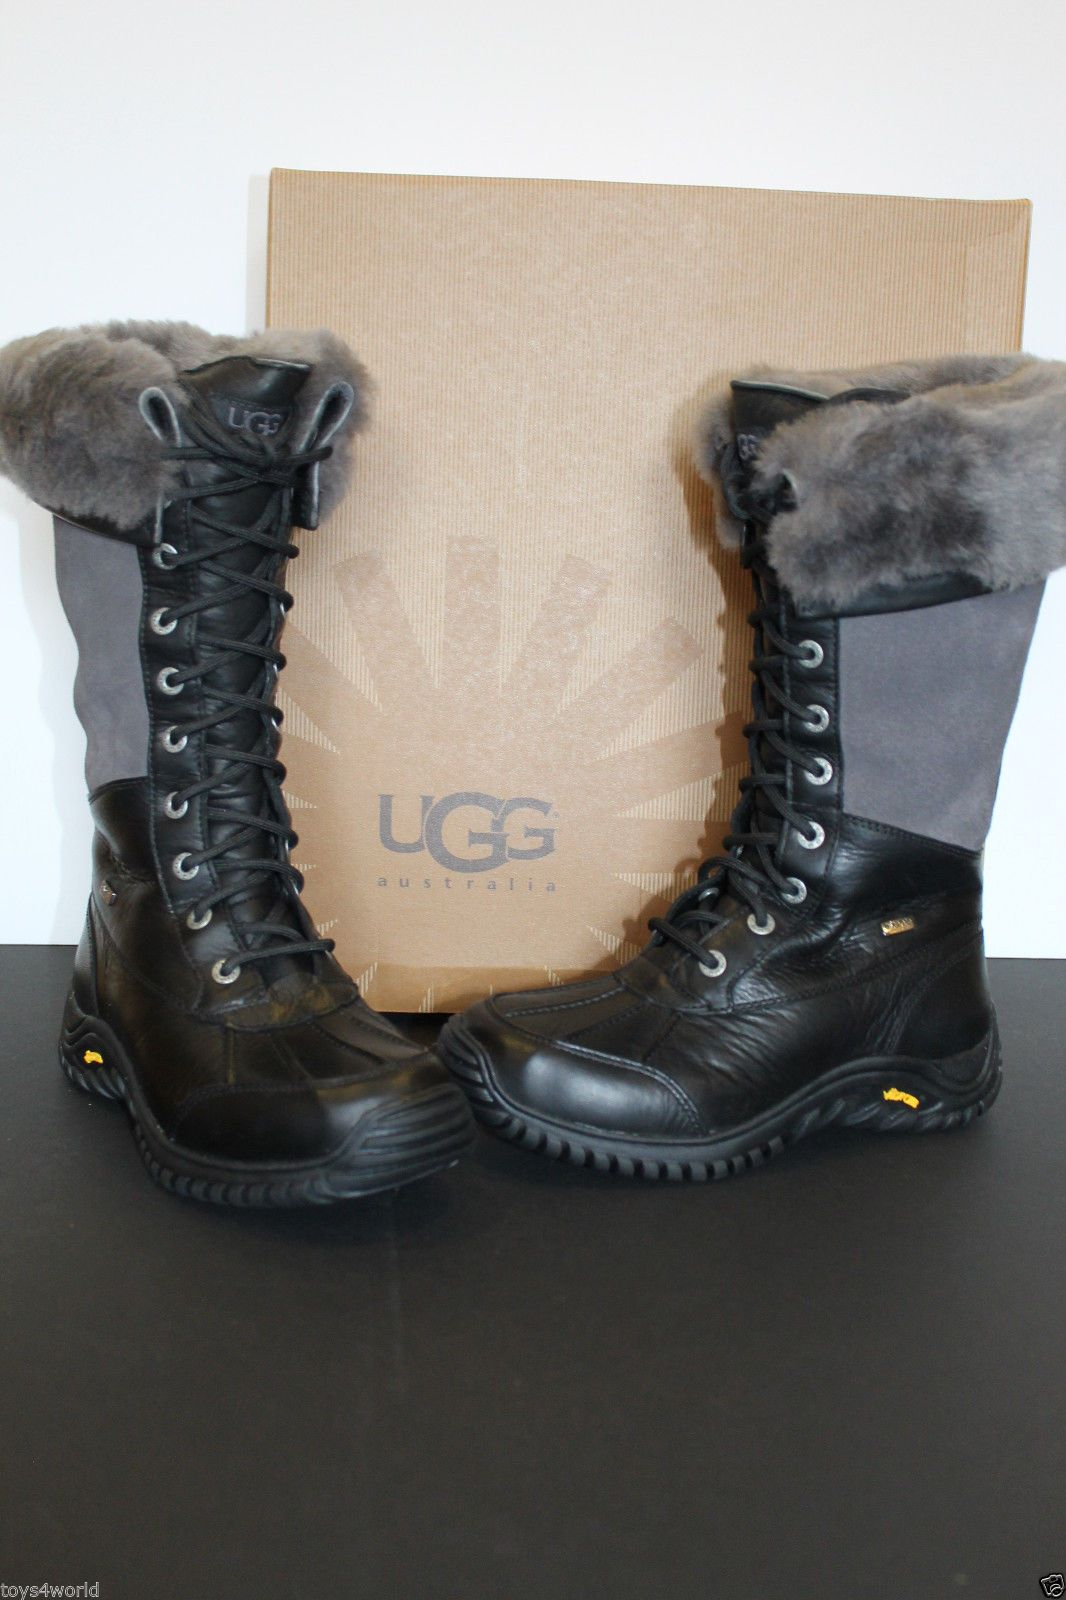 UGG ADIRONDACK TALL 1001786 BLACK GREY Boots Size US 6 / EU 37 / UK 4.5